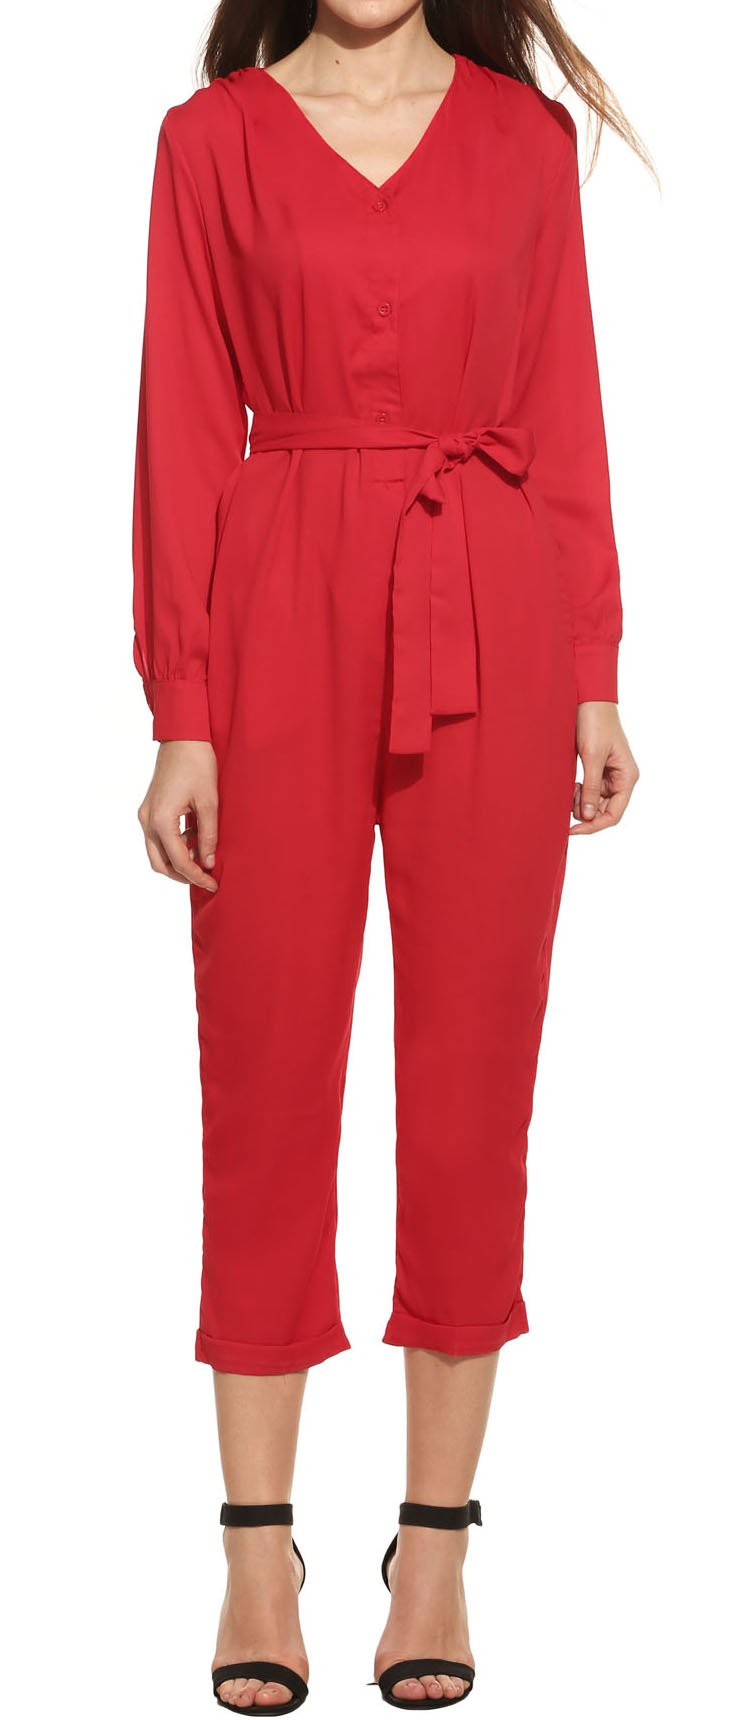 keqill Women's Formal Cocktail One Piece Jumpsuit